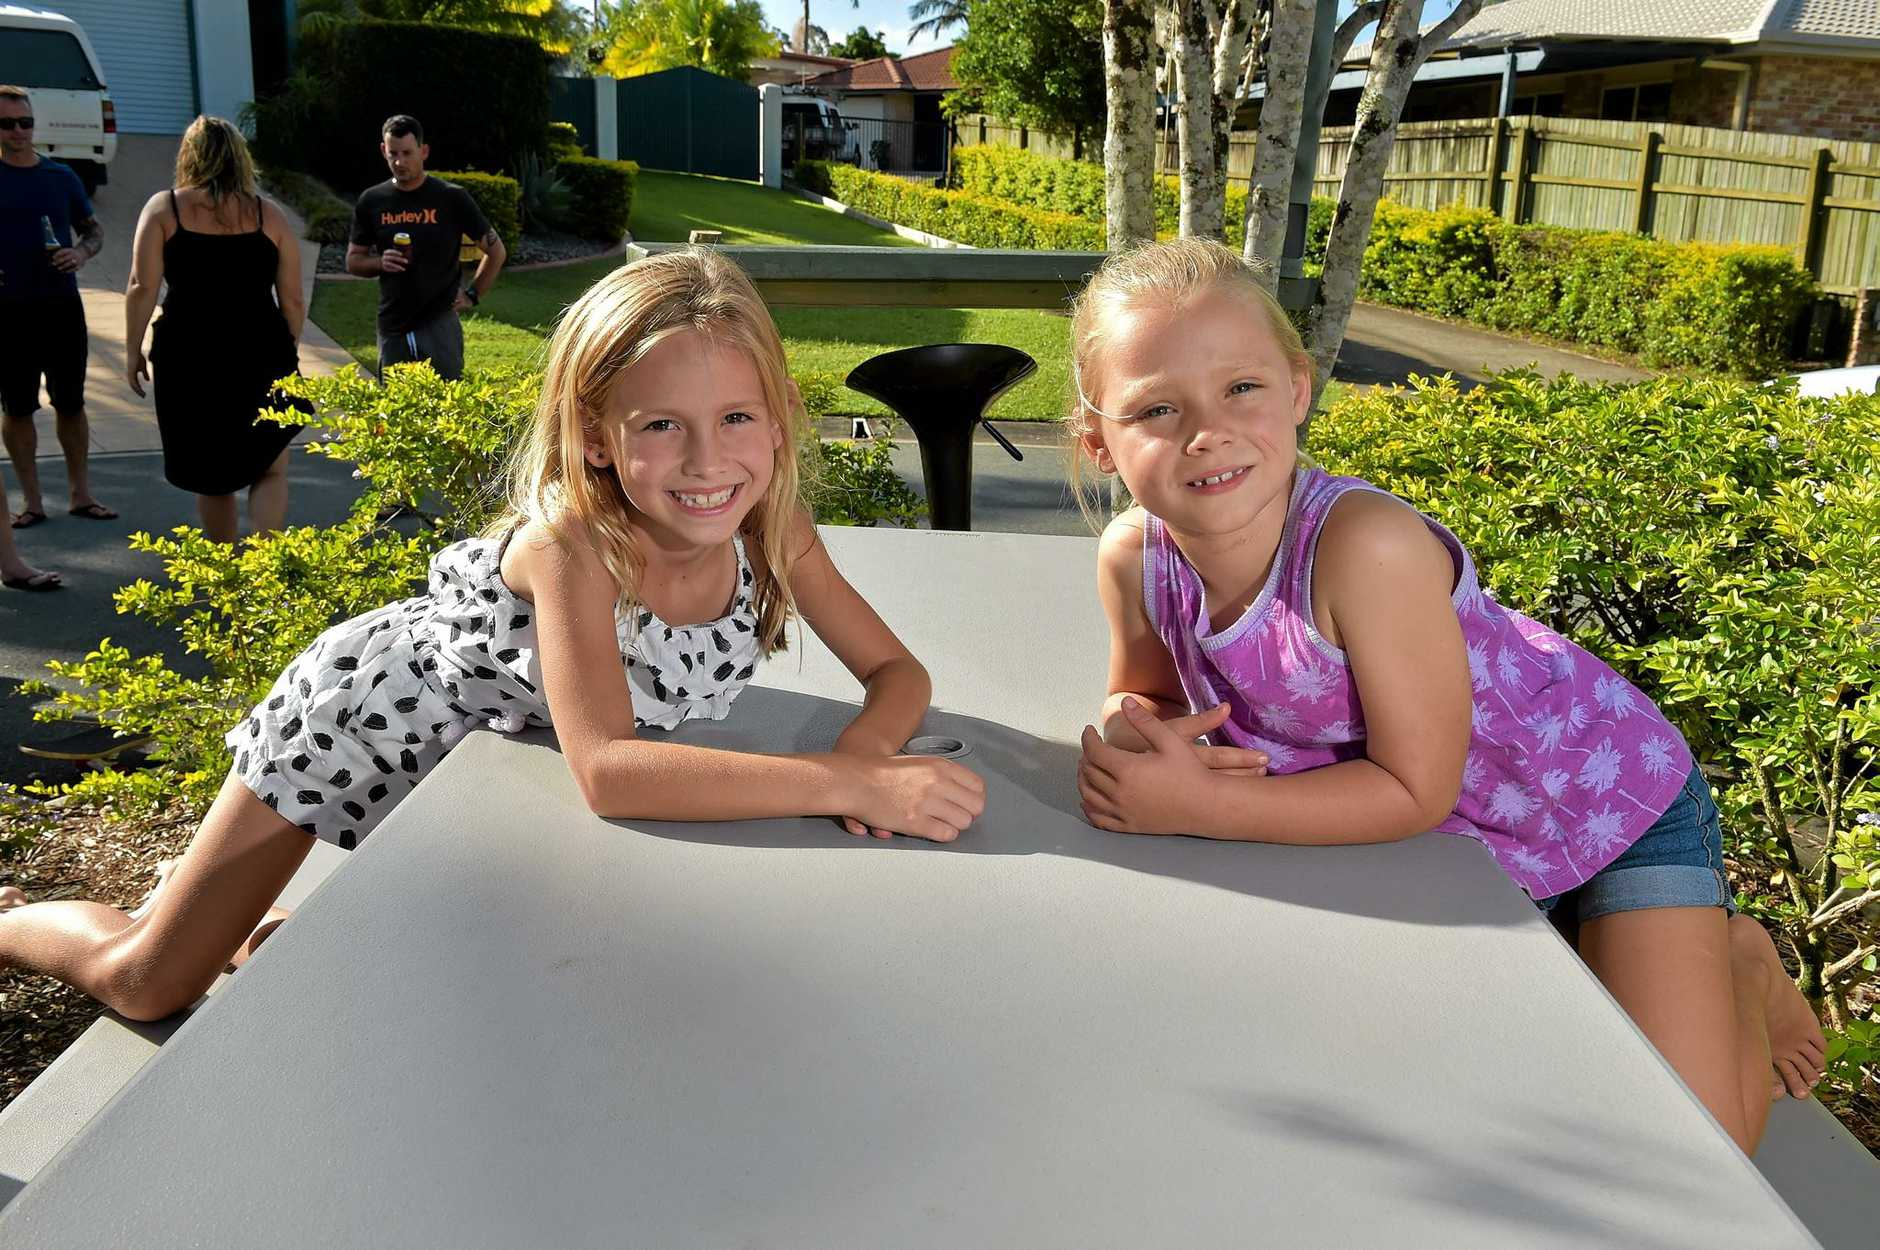 Residents of Chablis Court, Buderim, want to keep their picnic table at the end of their street despite an order from Council to remove it. Kirra Bernard ,8, and Ayla McCallum,5, want to keep the table.